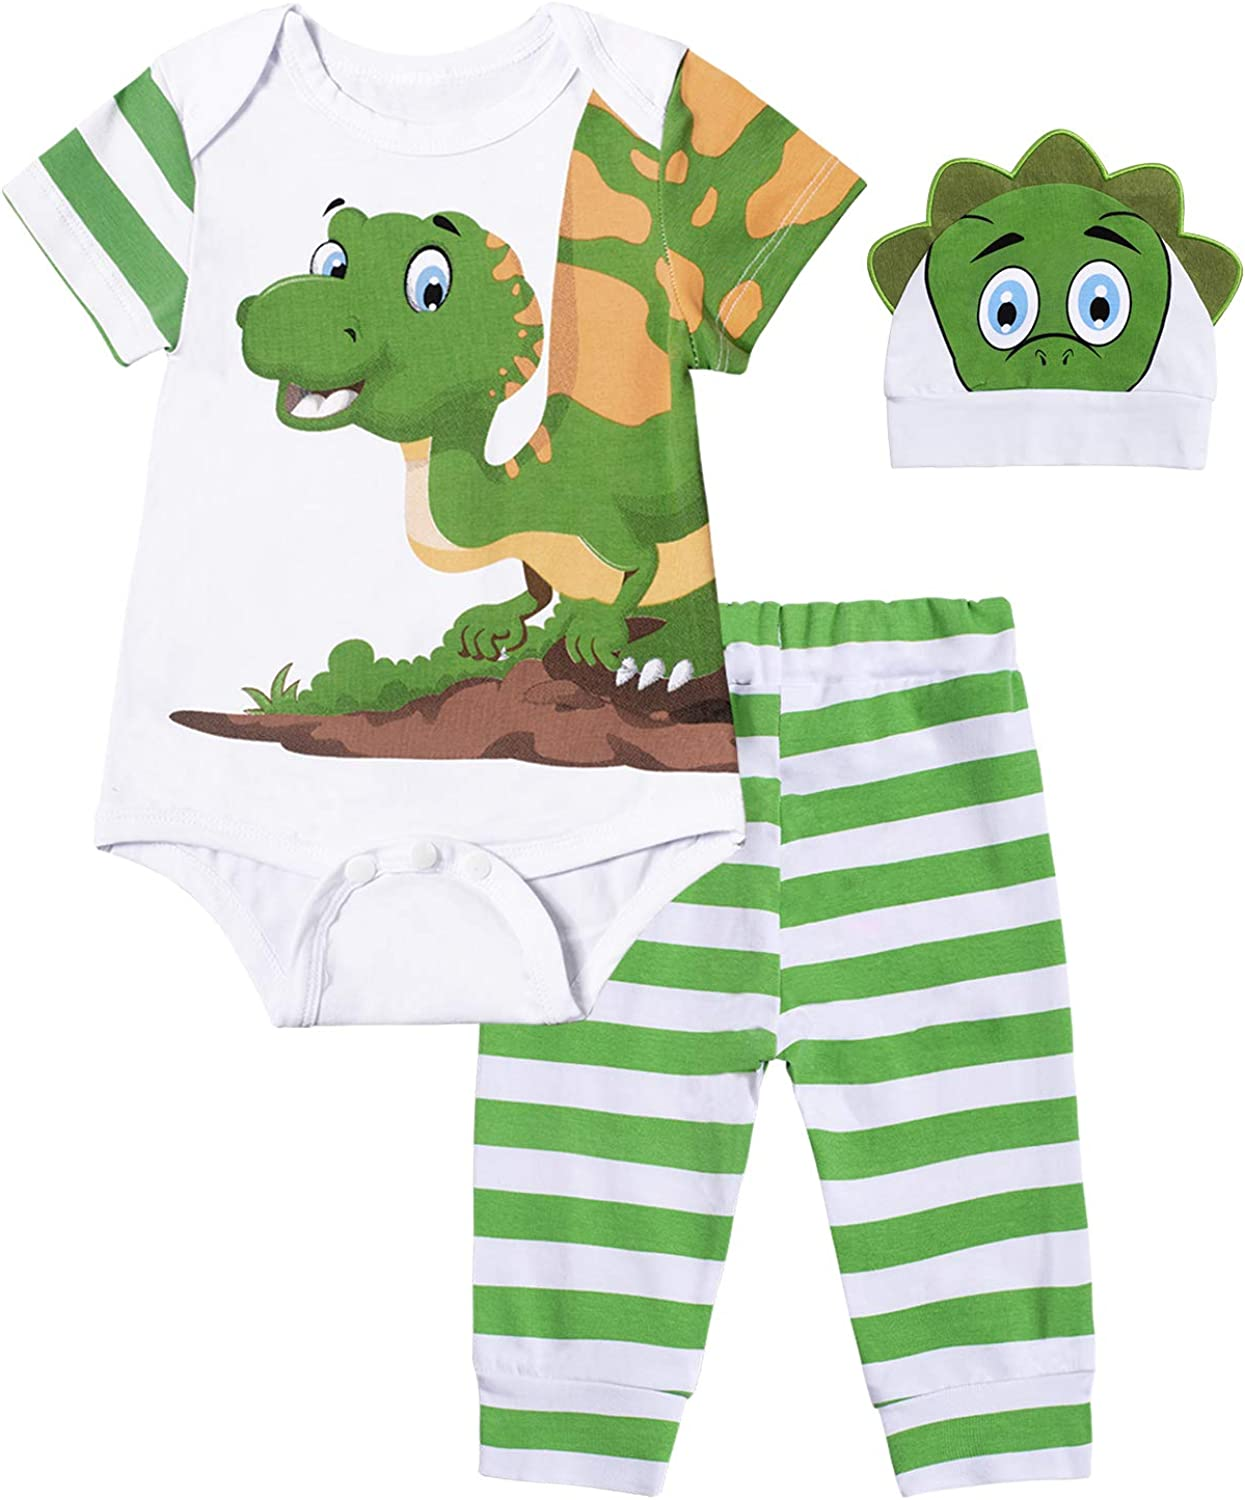 Paddy Field Infant Baby Boys Girl Dinosaur Print Romper Tops Striped Pants Outfit Casual Set